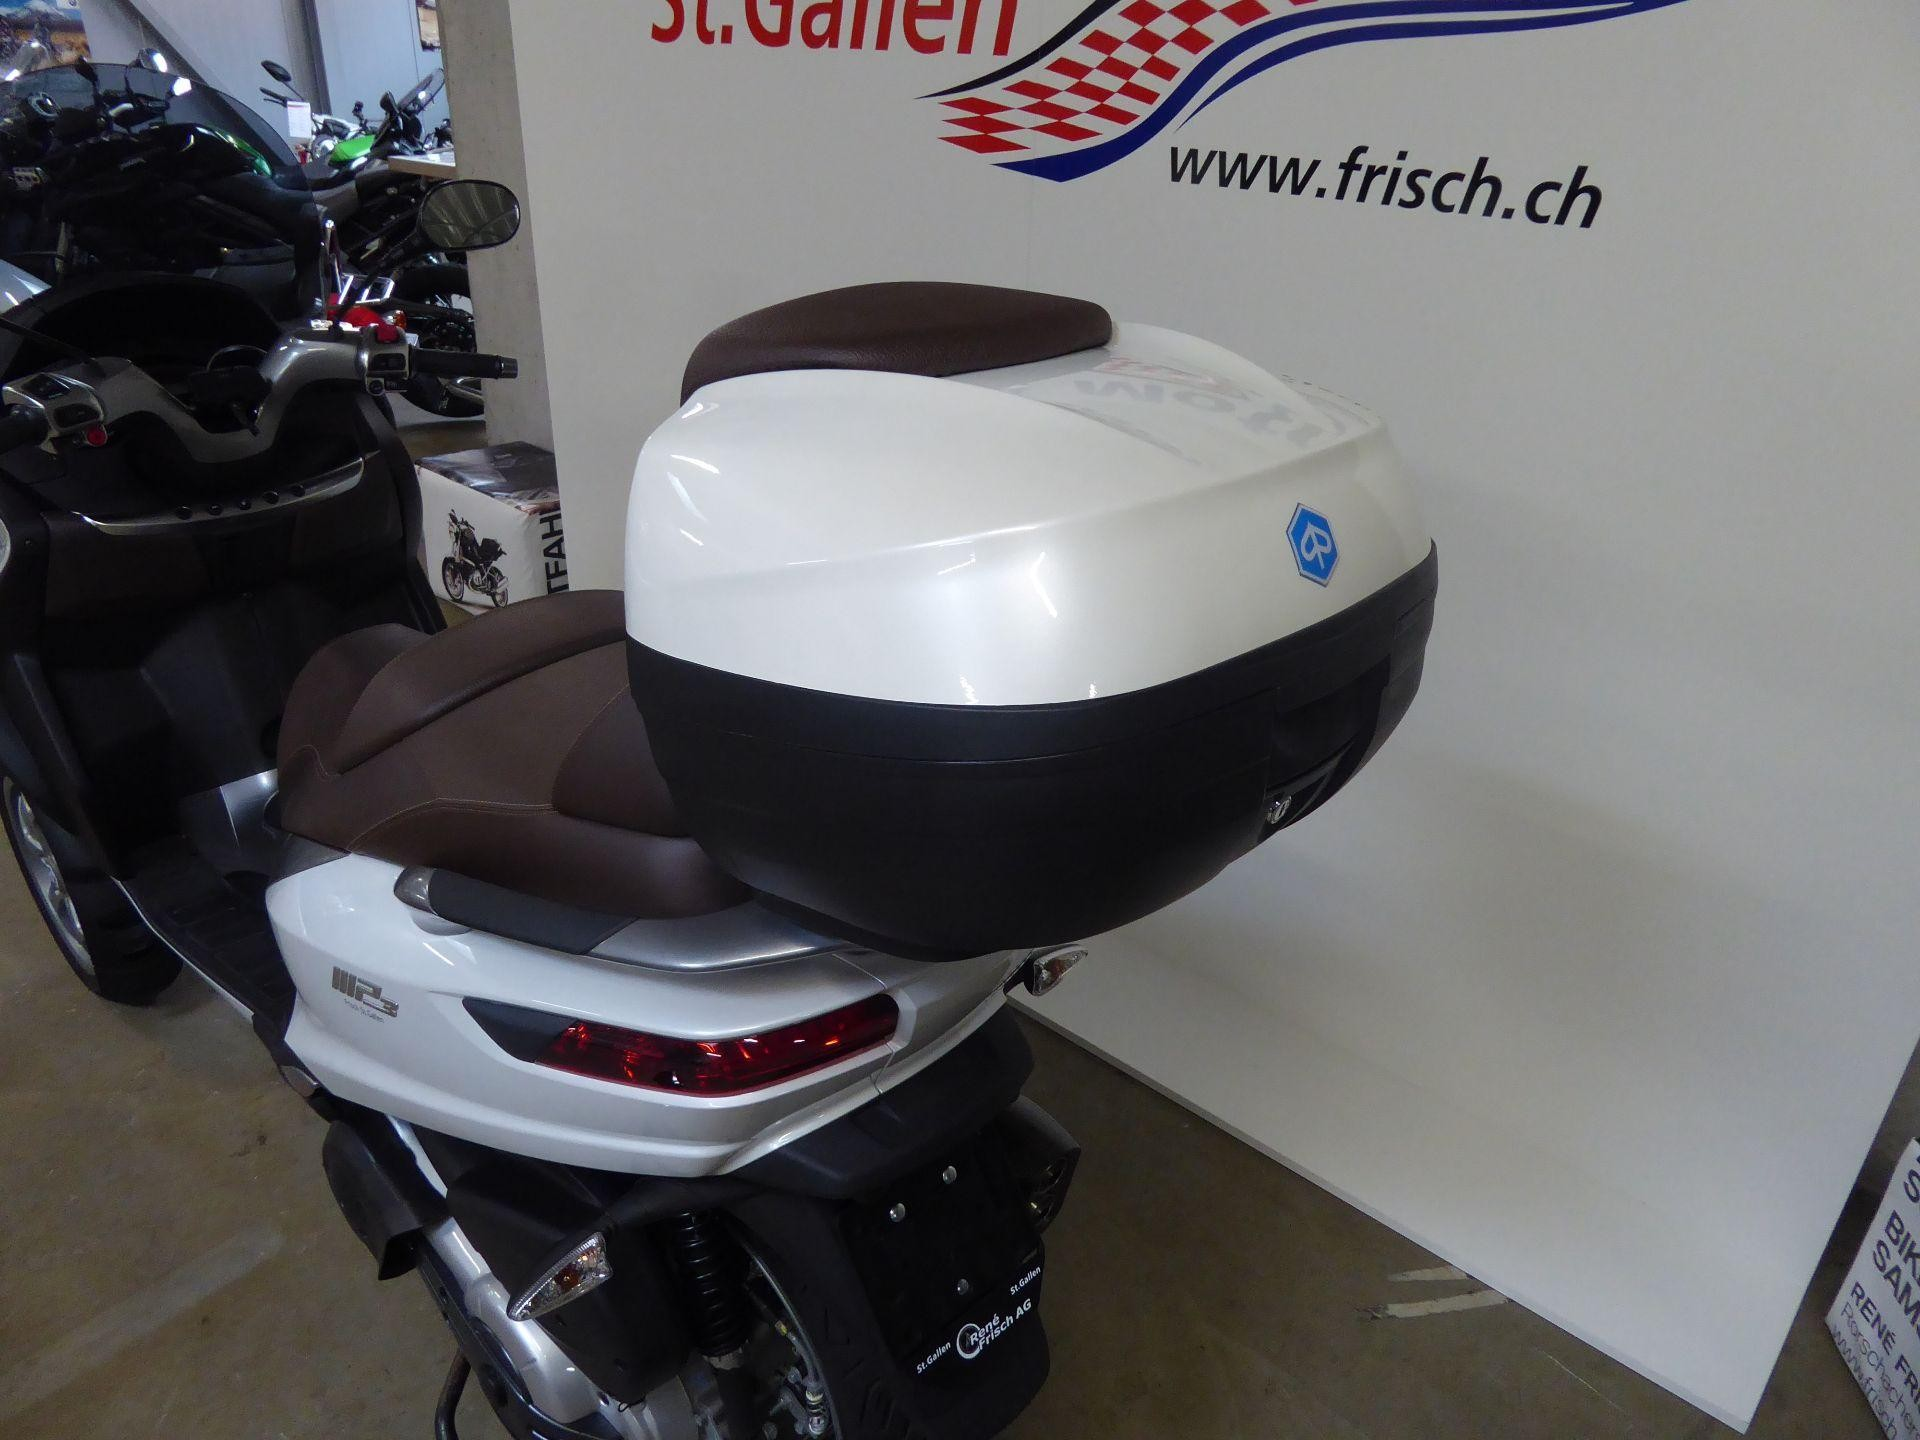 motorrad occasion kaufen piaggio mp3 500 lt abs ren frisch ag st gallen. Black Bedroom Furniture Sets. Home Design Ideas